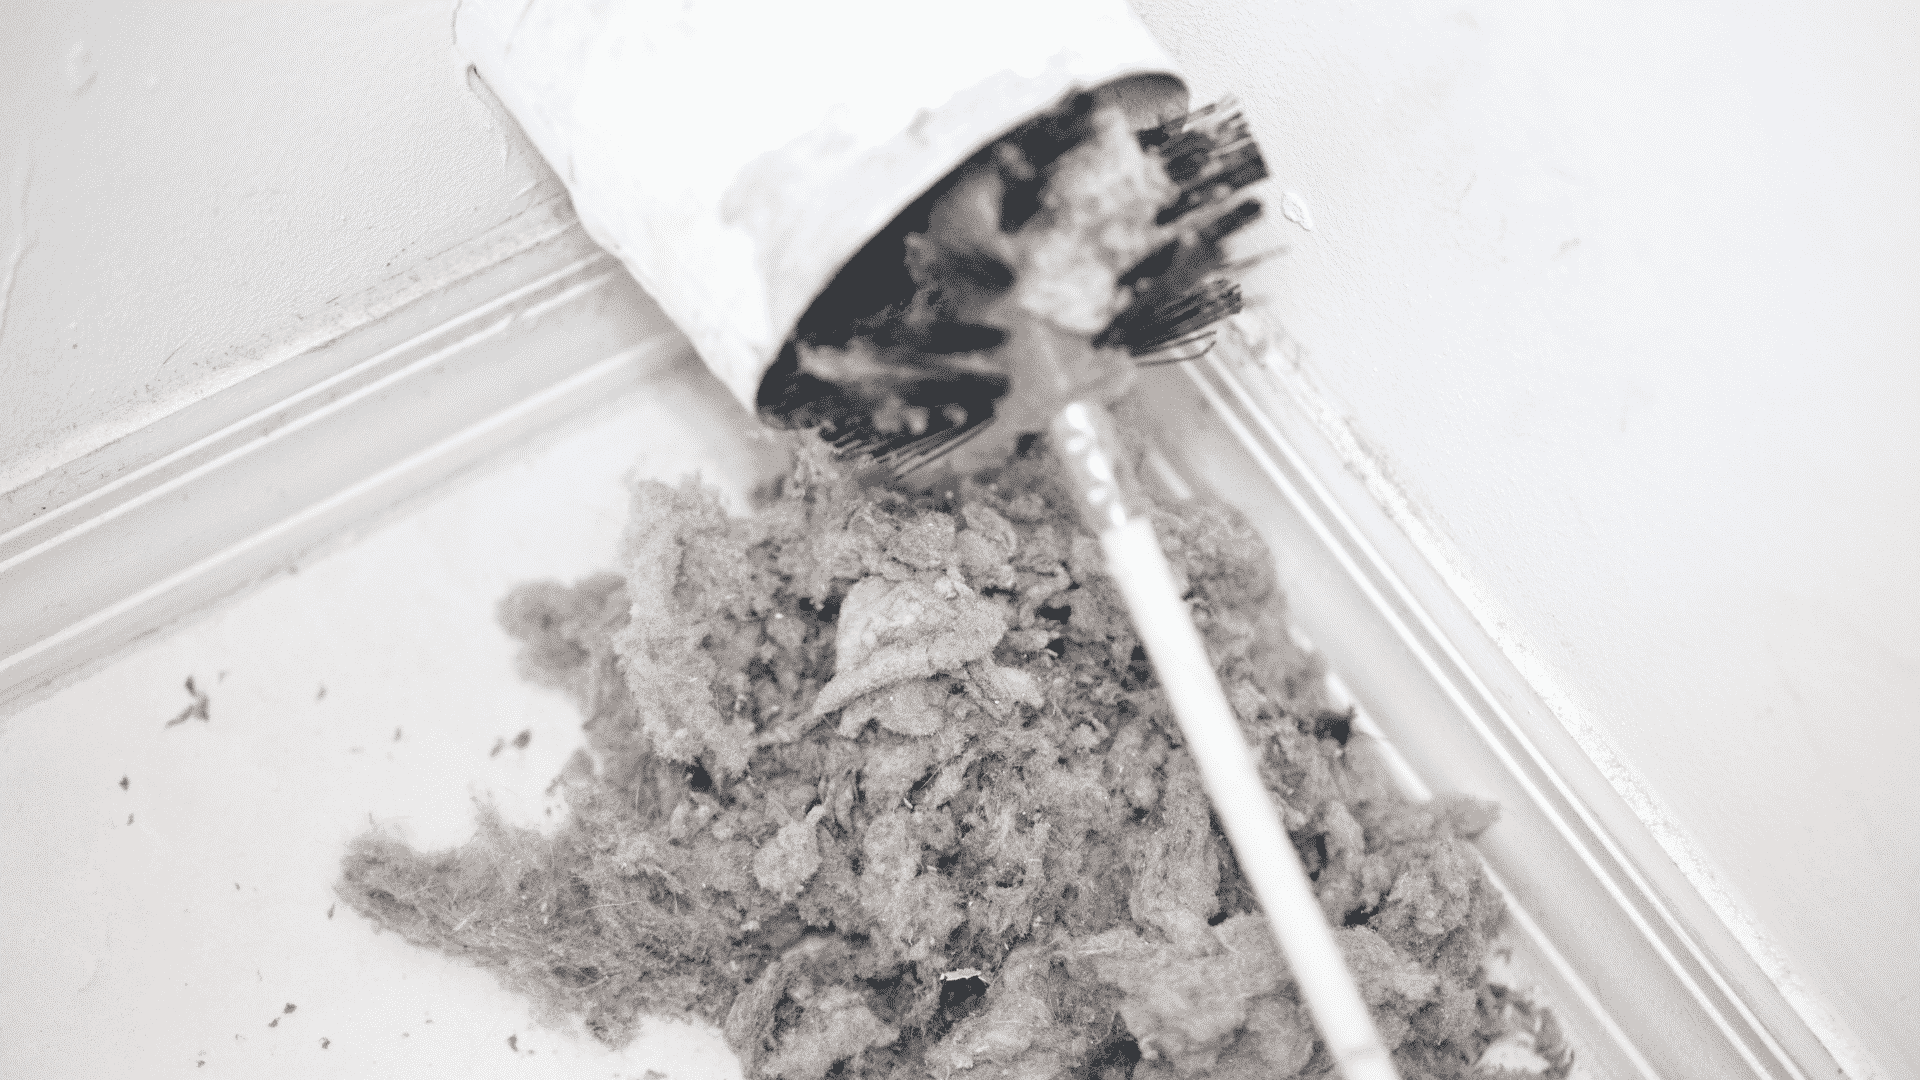 using dryer vent cleaning kit